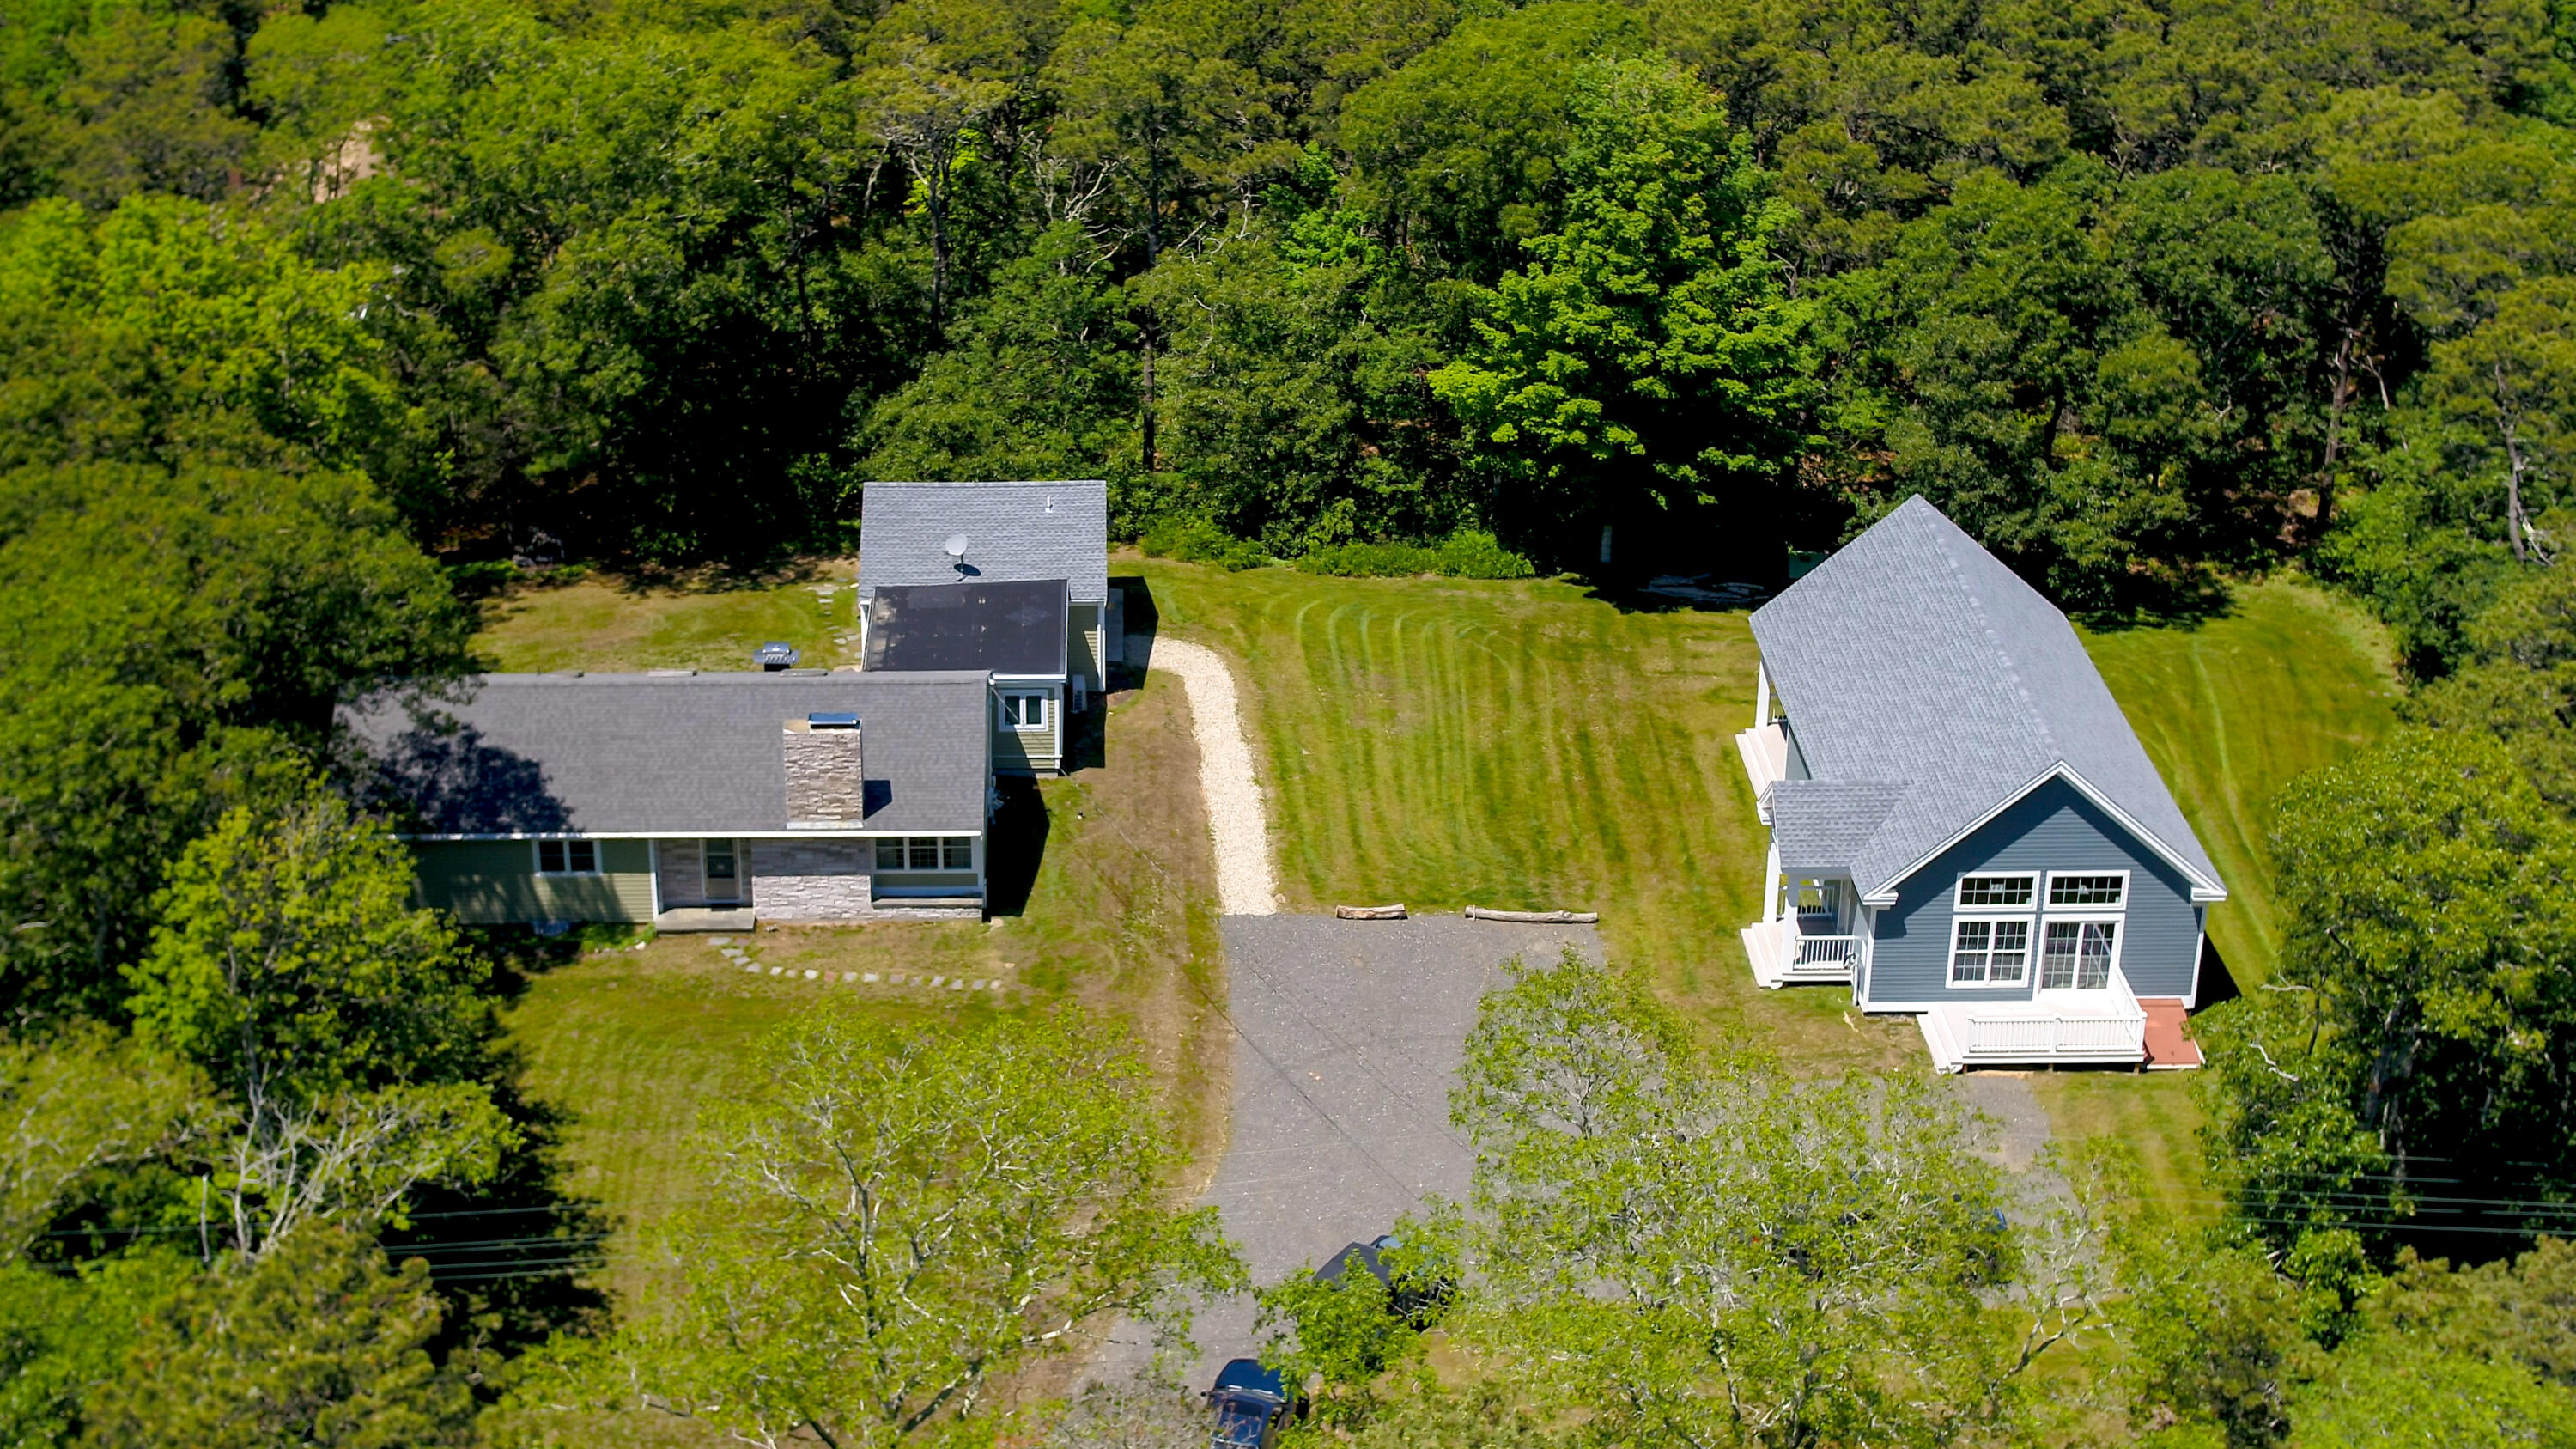 695 Cable Road, Eastham MA, 02642 details